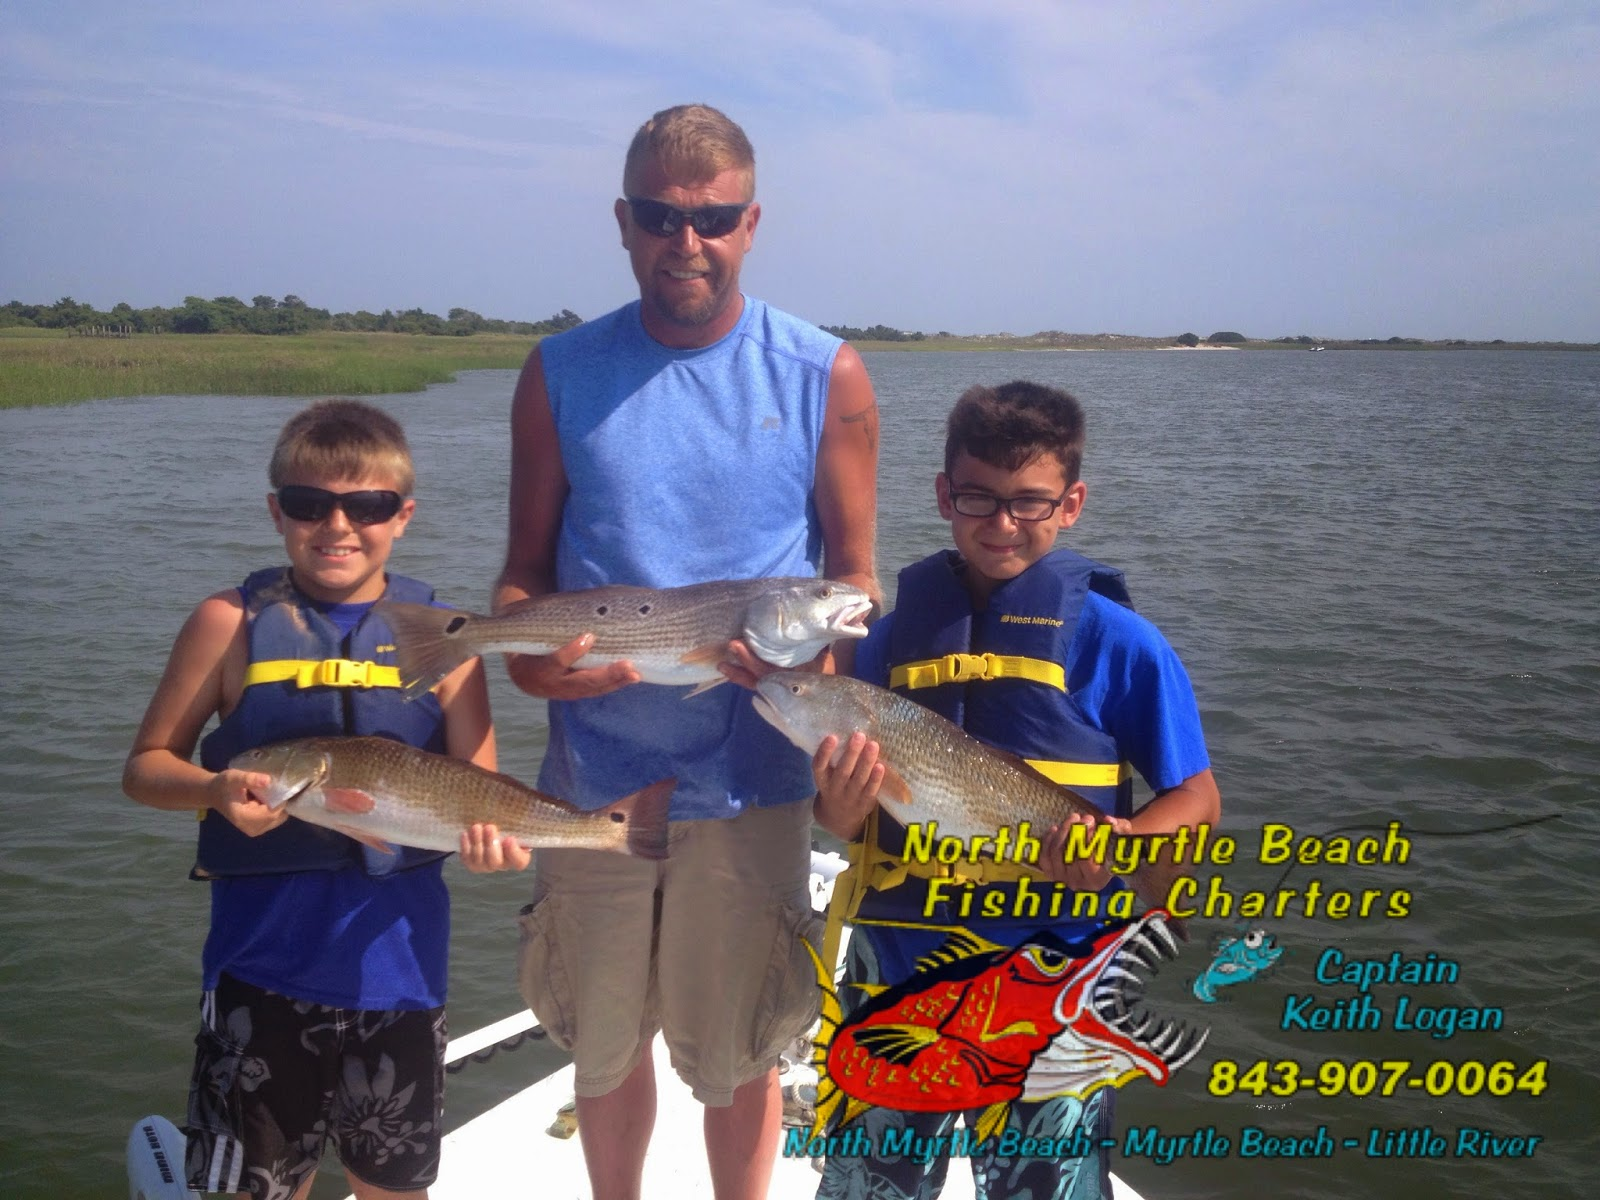 North myrtle beach fishing charters for Myrtle beach shark fishing charters